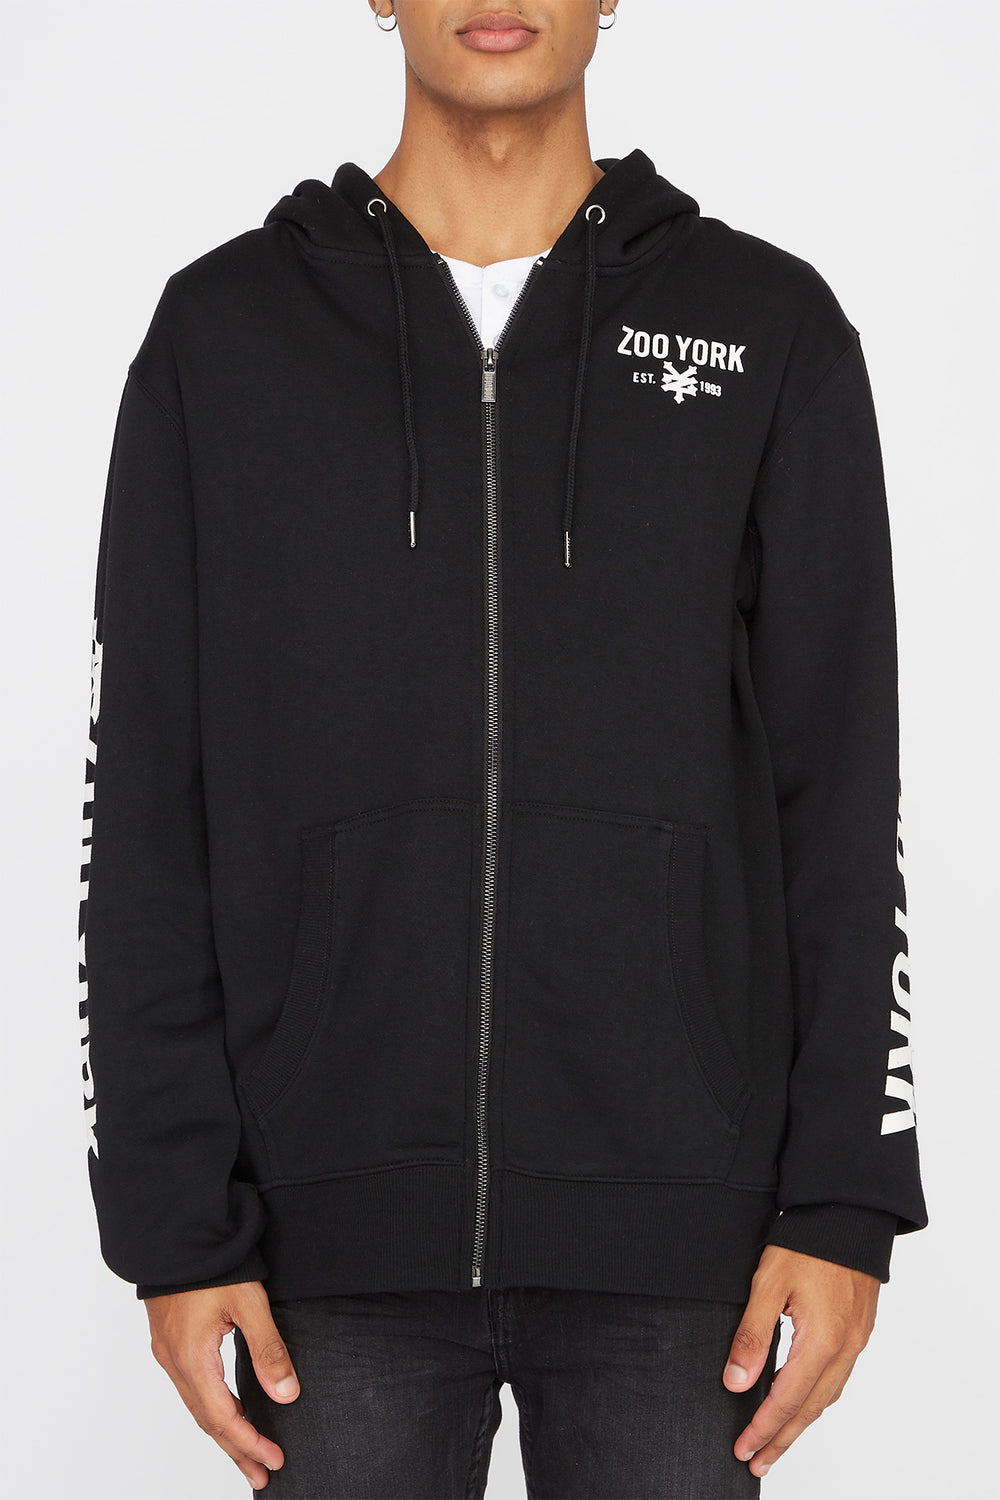 Zoo York Mens Zip-Up Hoodie Black